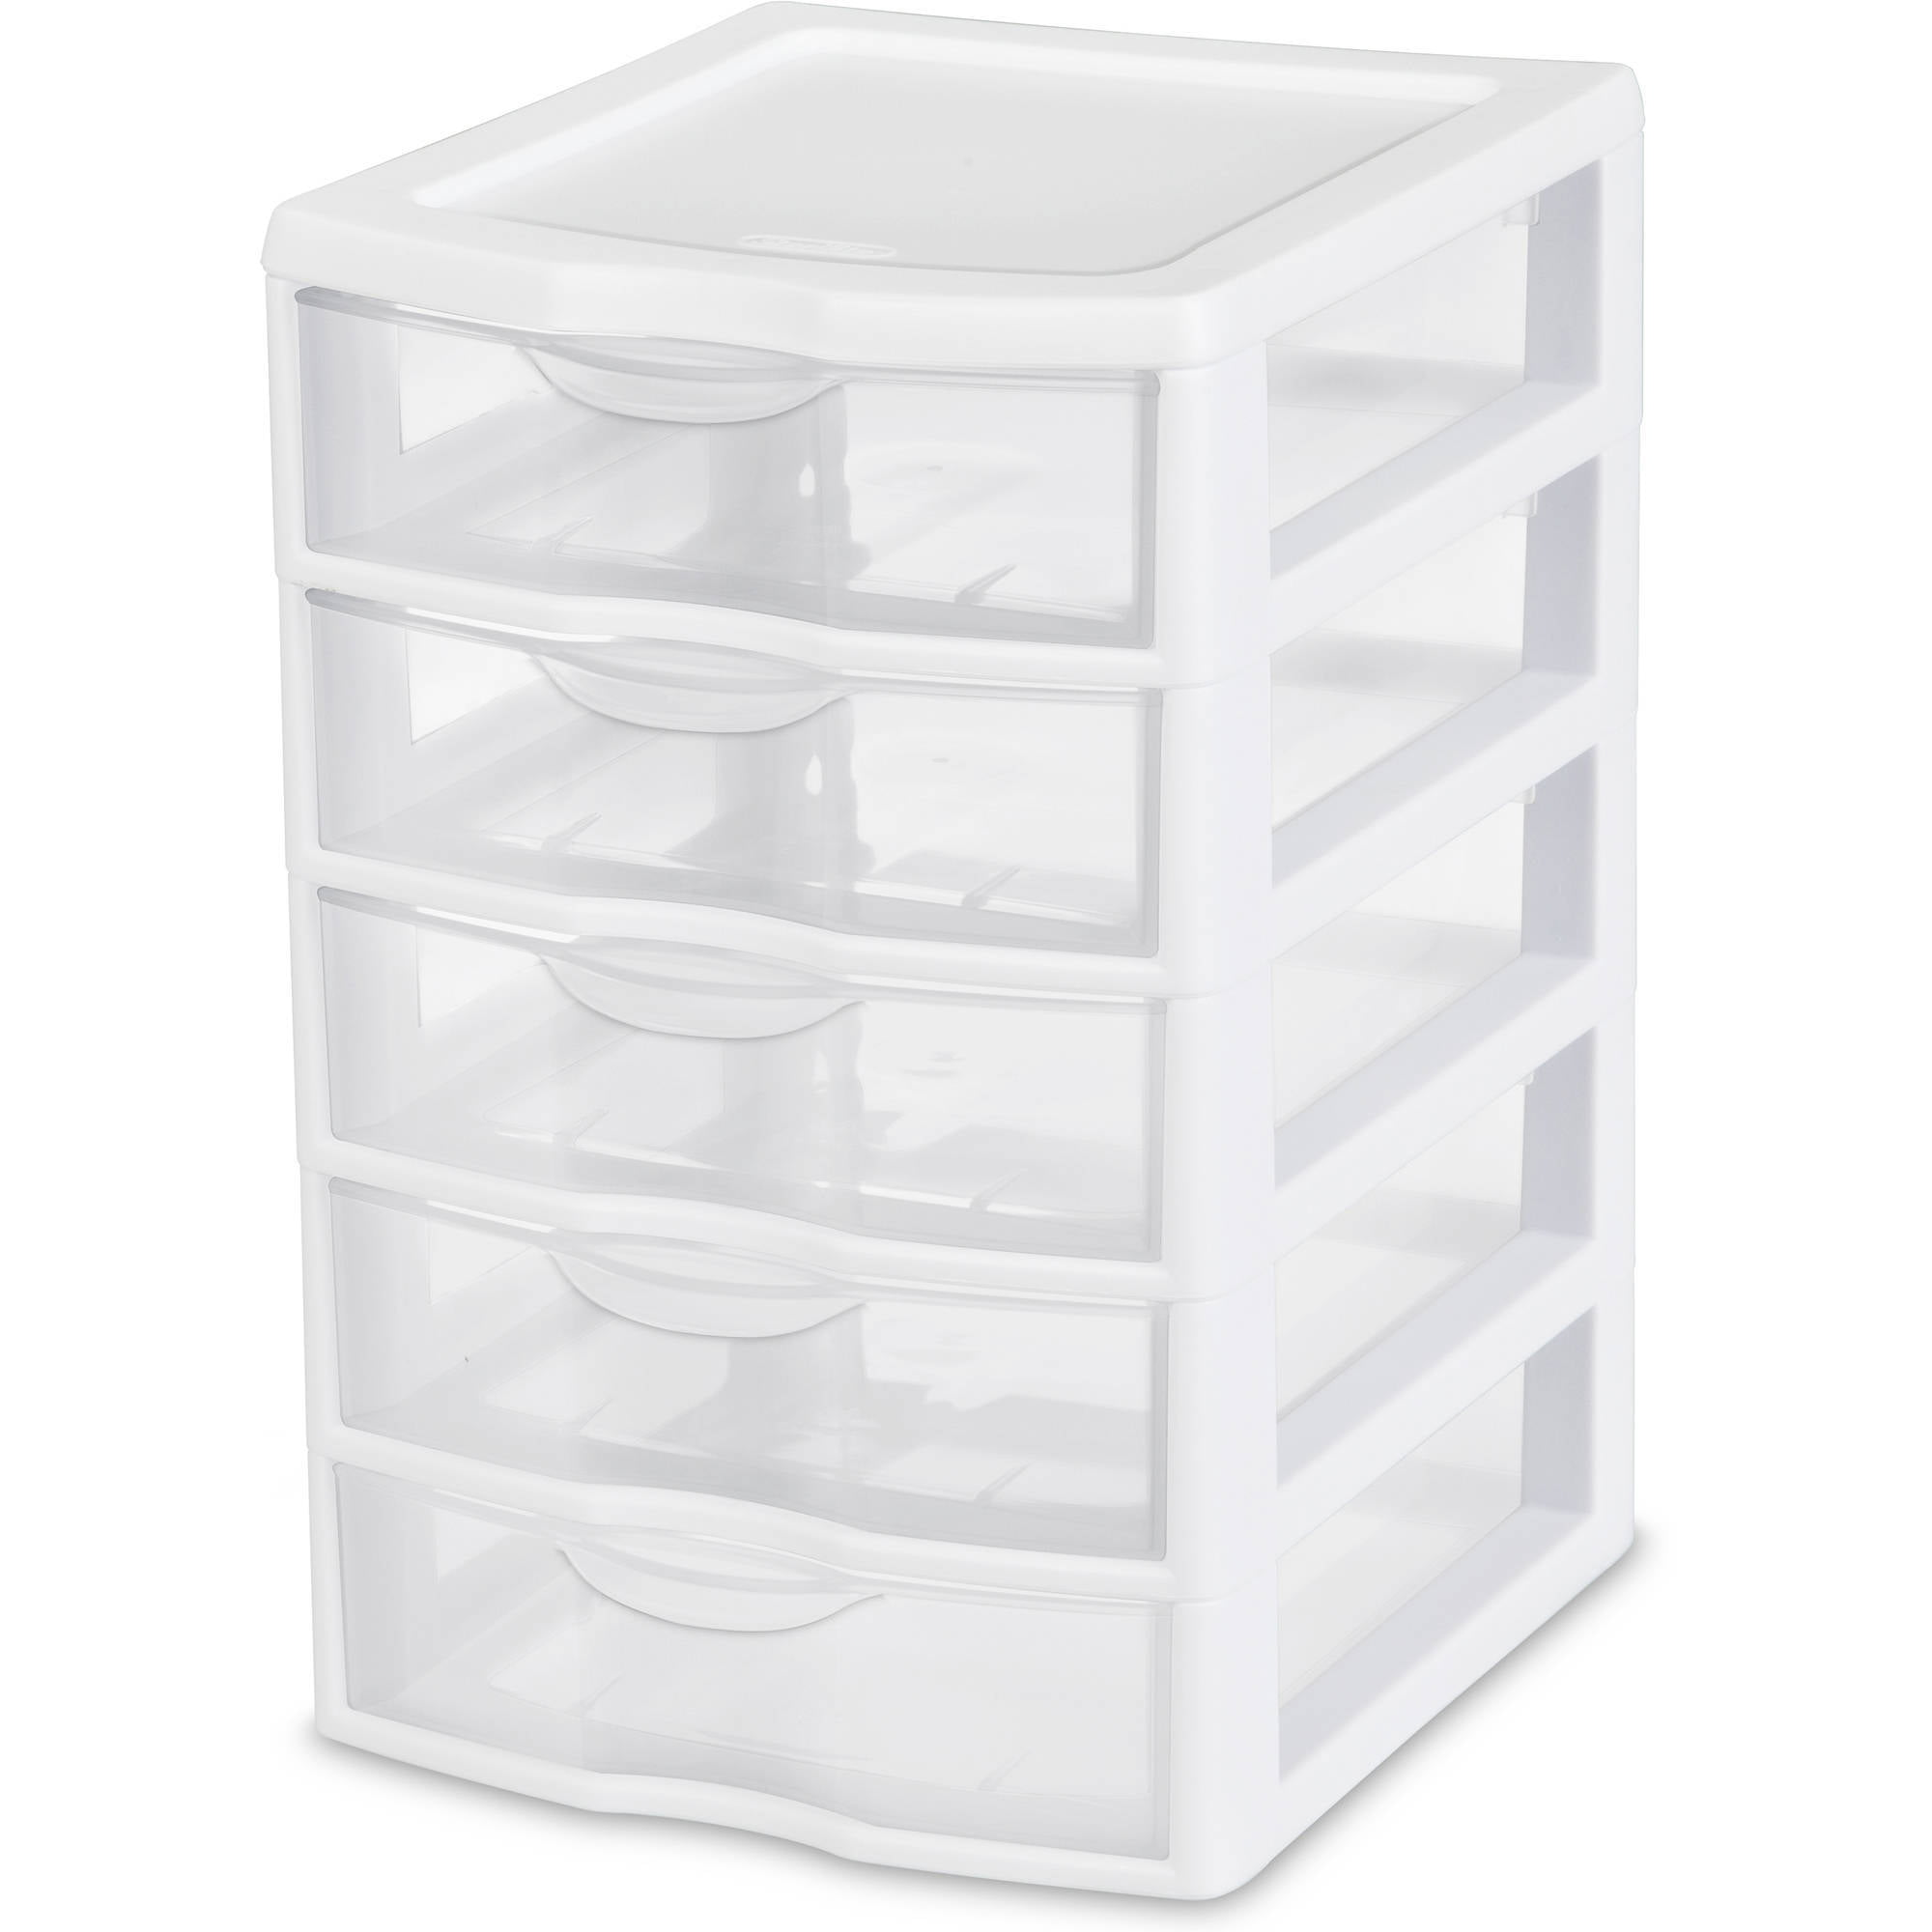 WeatherShield Storage Box, Clear   Walmart.com